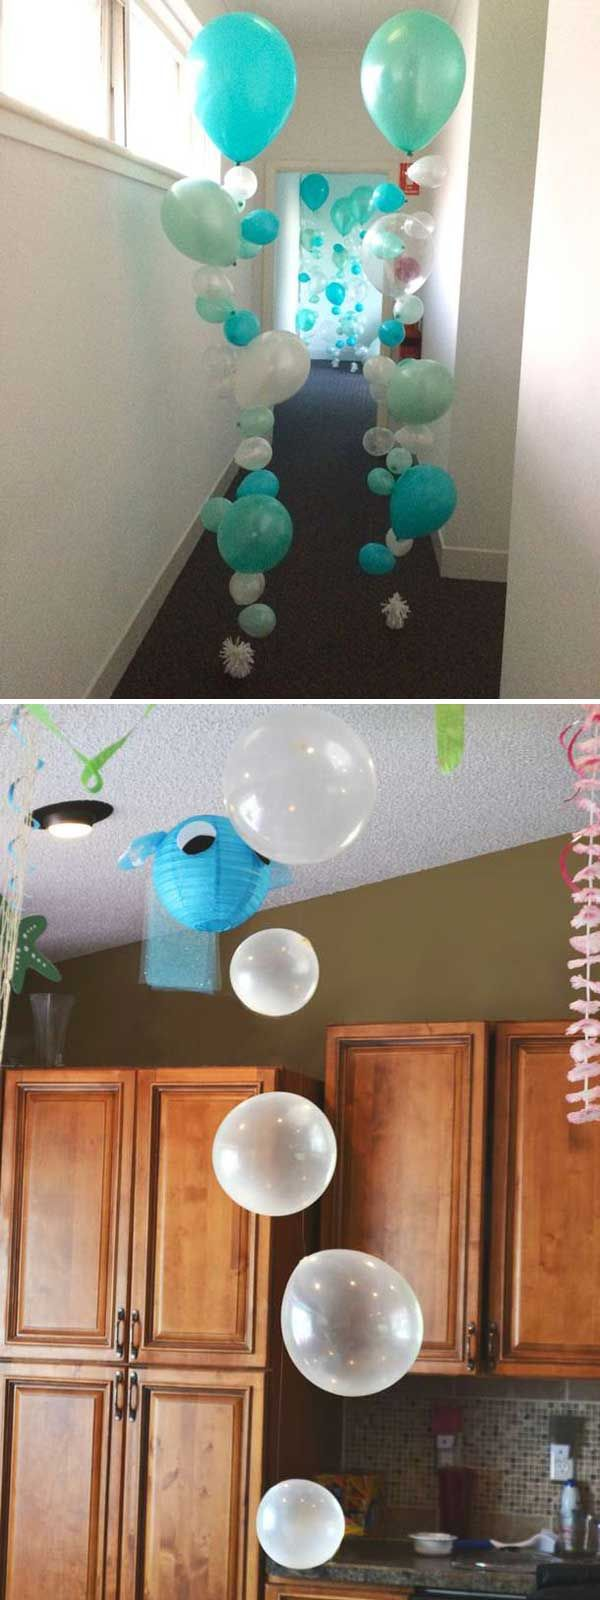 """Sometimes, kid's room decor needs to change according to the season, such as when it is getting into summer, the """"under the sea"""" theme would be perfect for your home. Either your kid loves sea creatures or be a mermaid fan, there is an under-the-sea decorating idea for every kiddo that she/he want to bring [...]"""